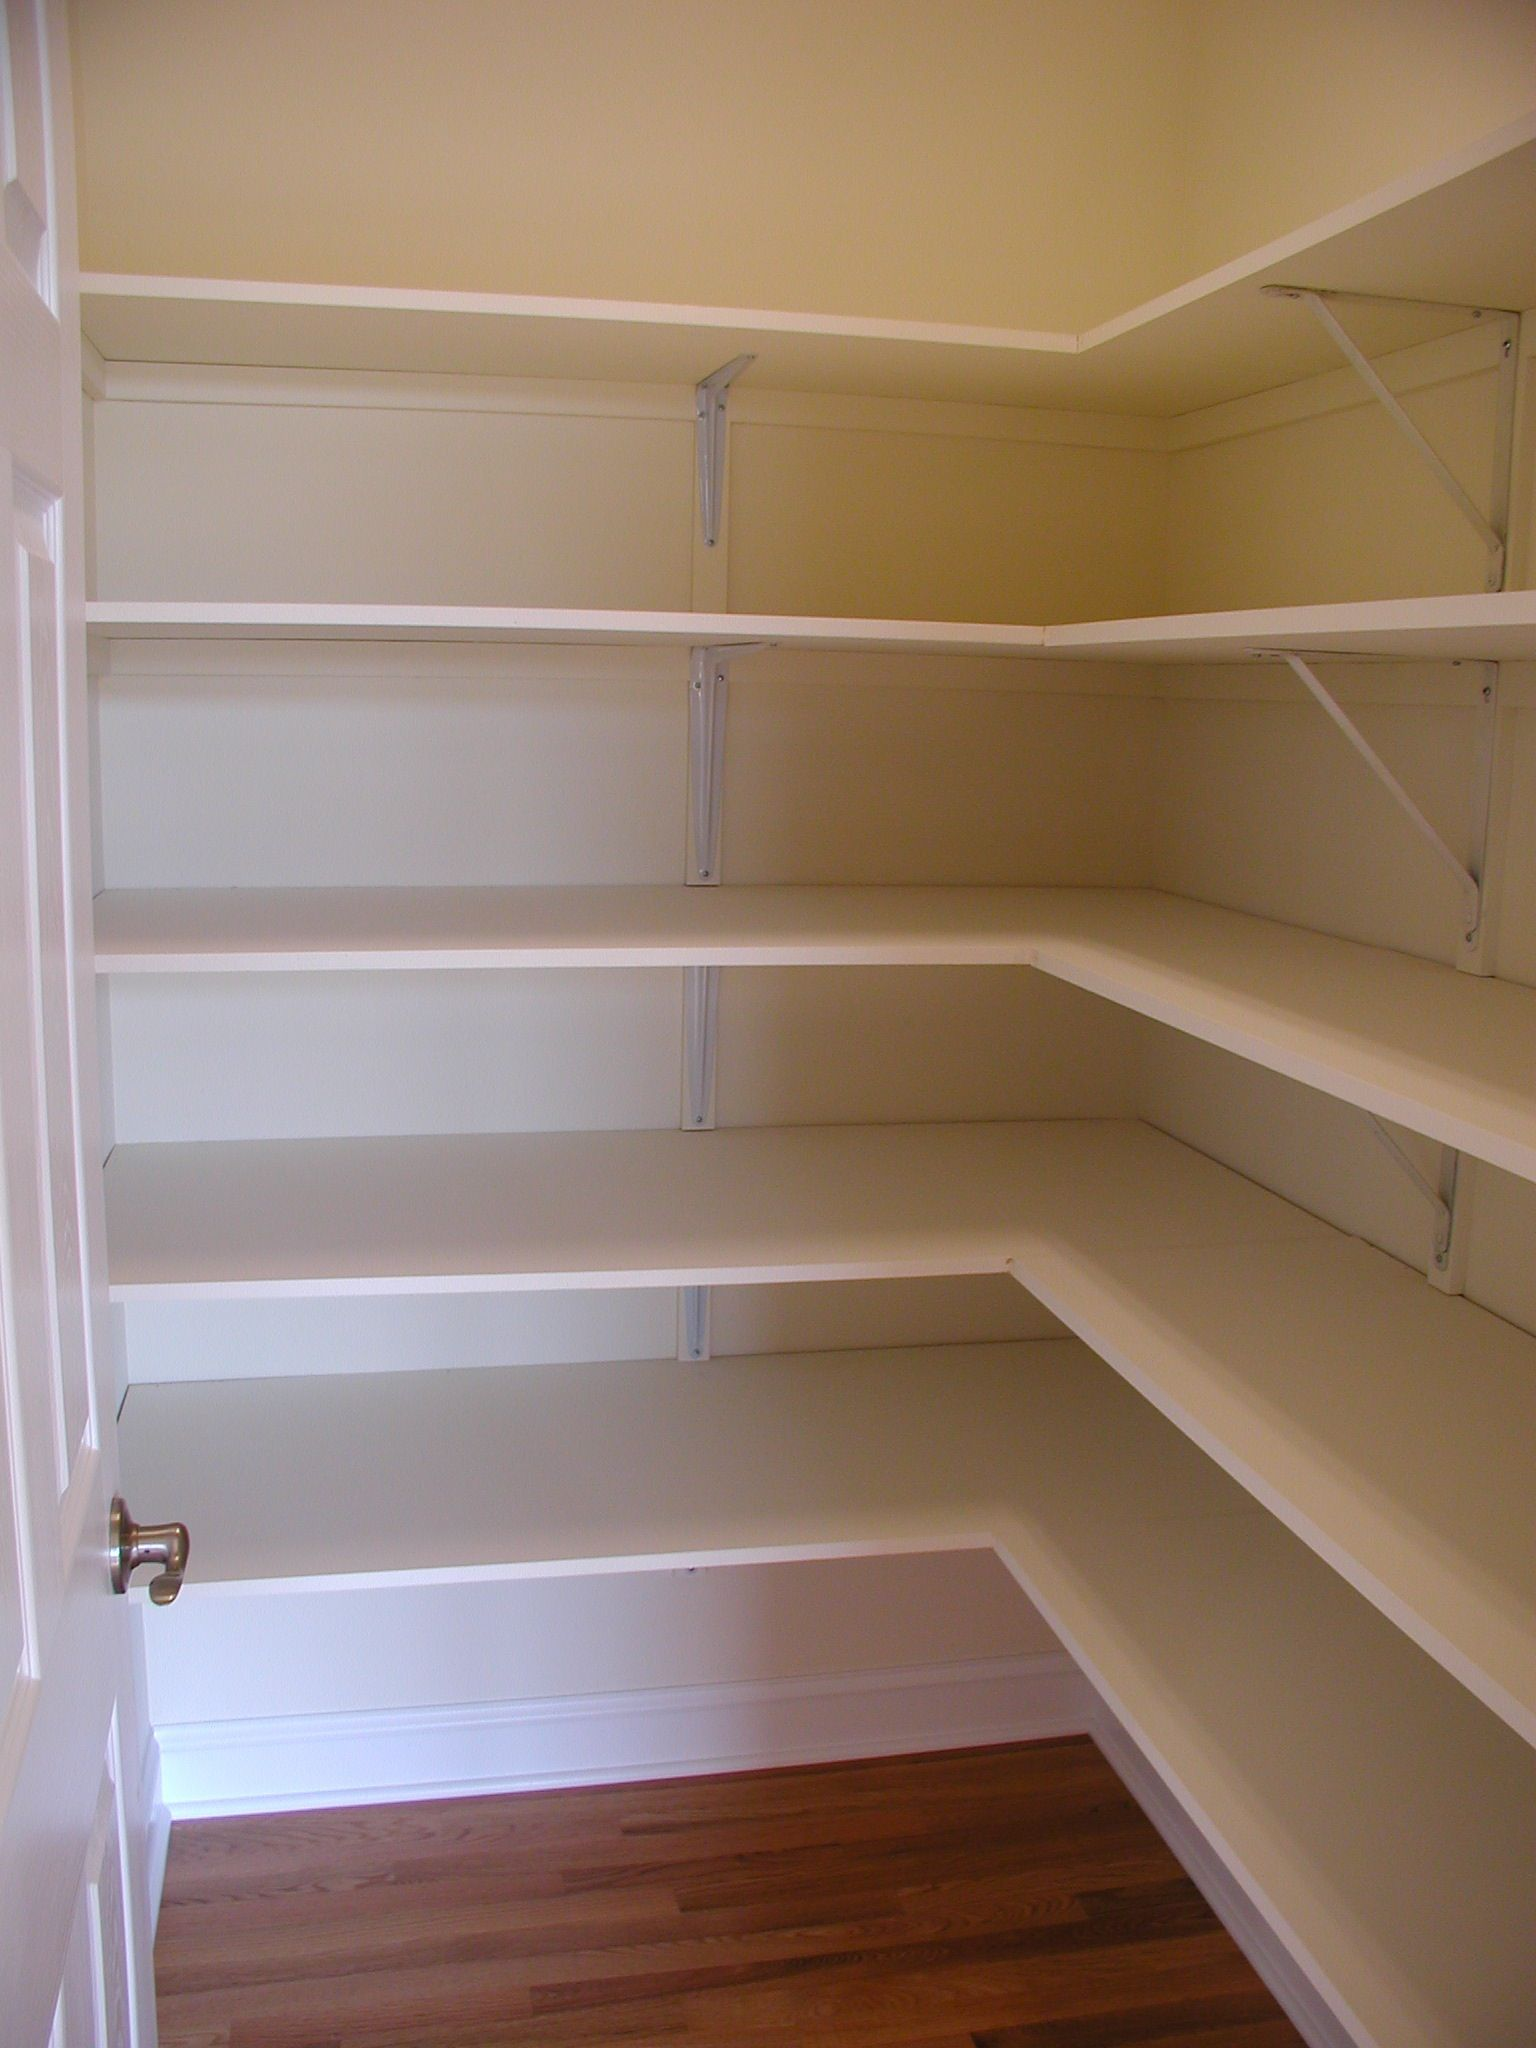 Walk In Linen Closet Cut Down Some Of The Shelves To